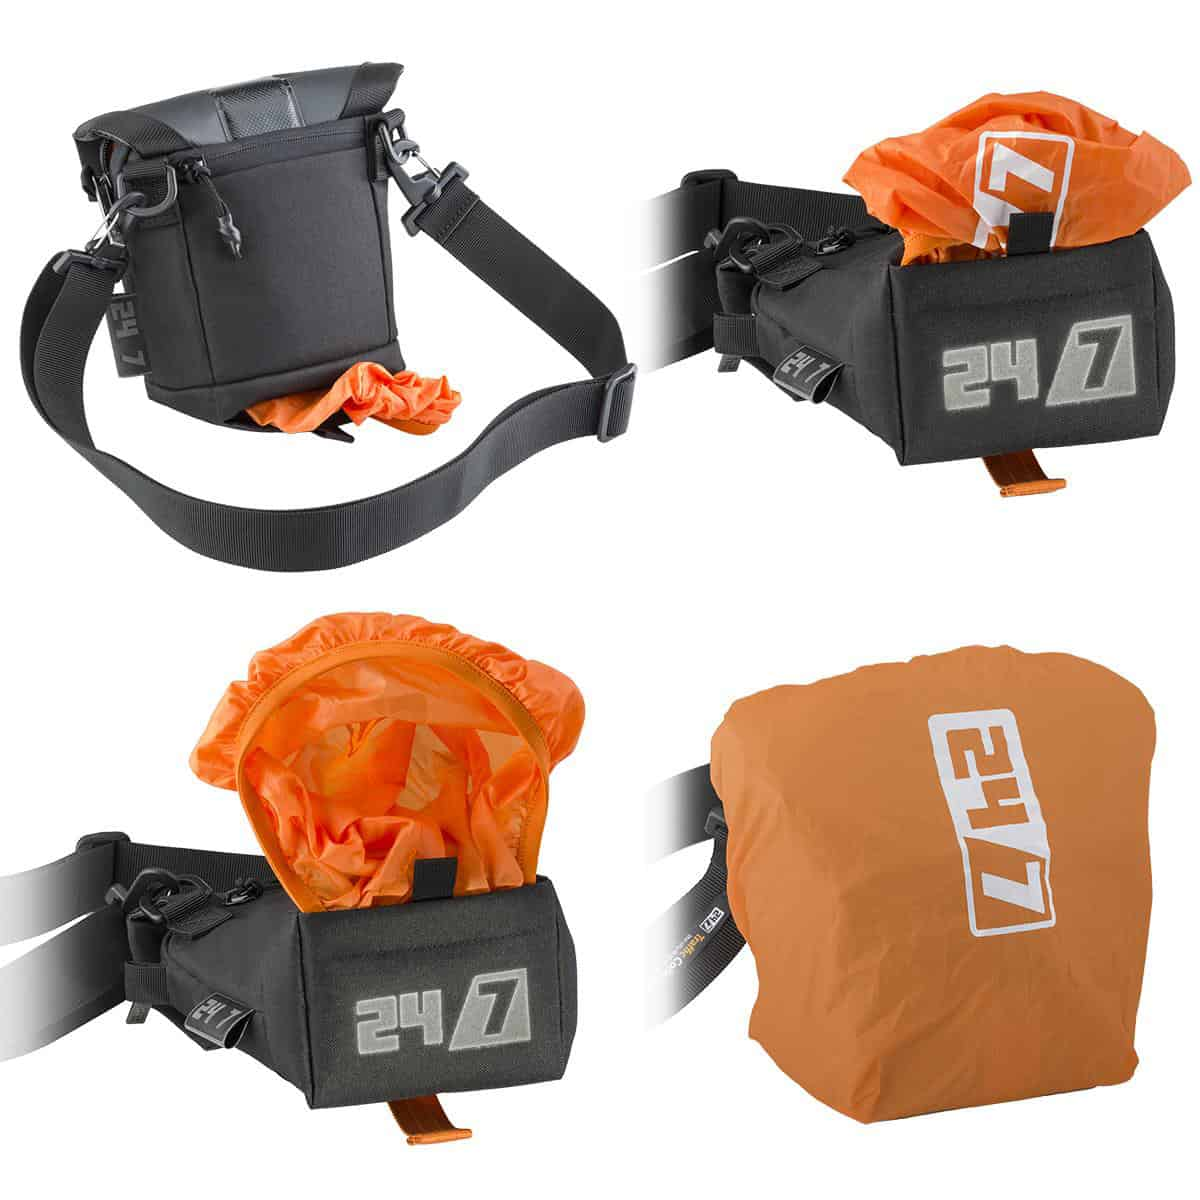 247 holster bag weather protection